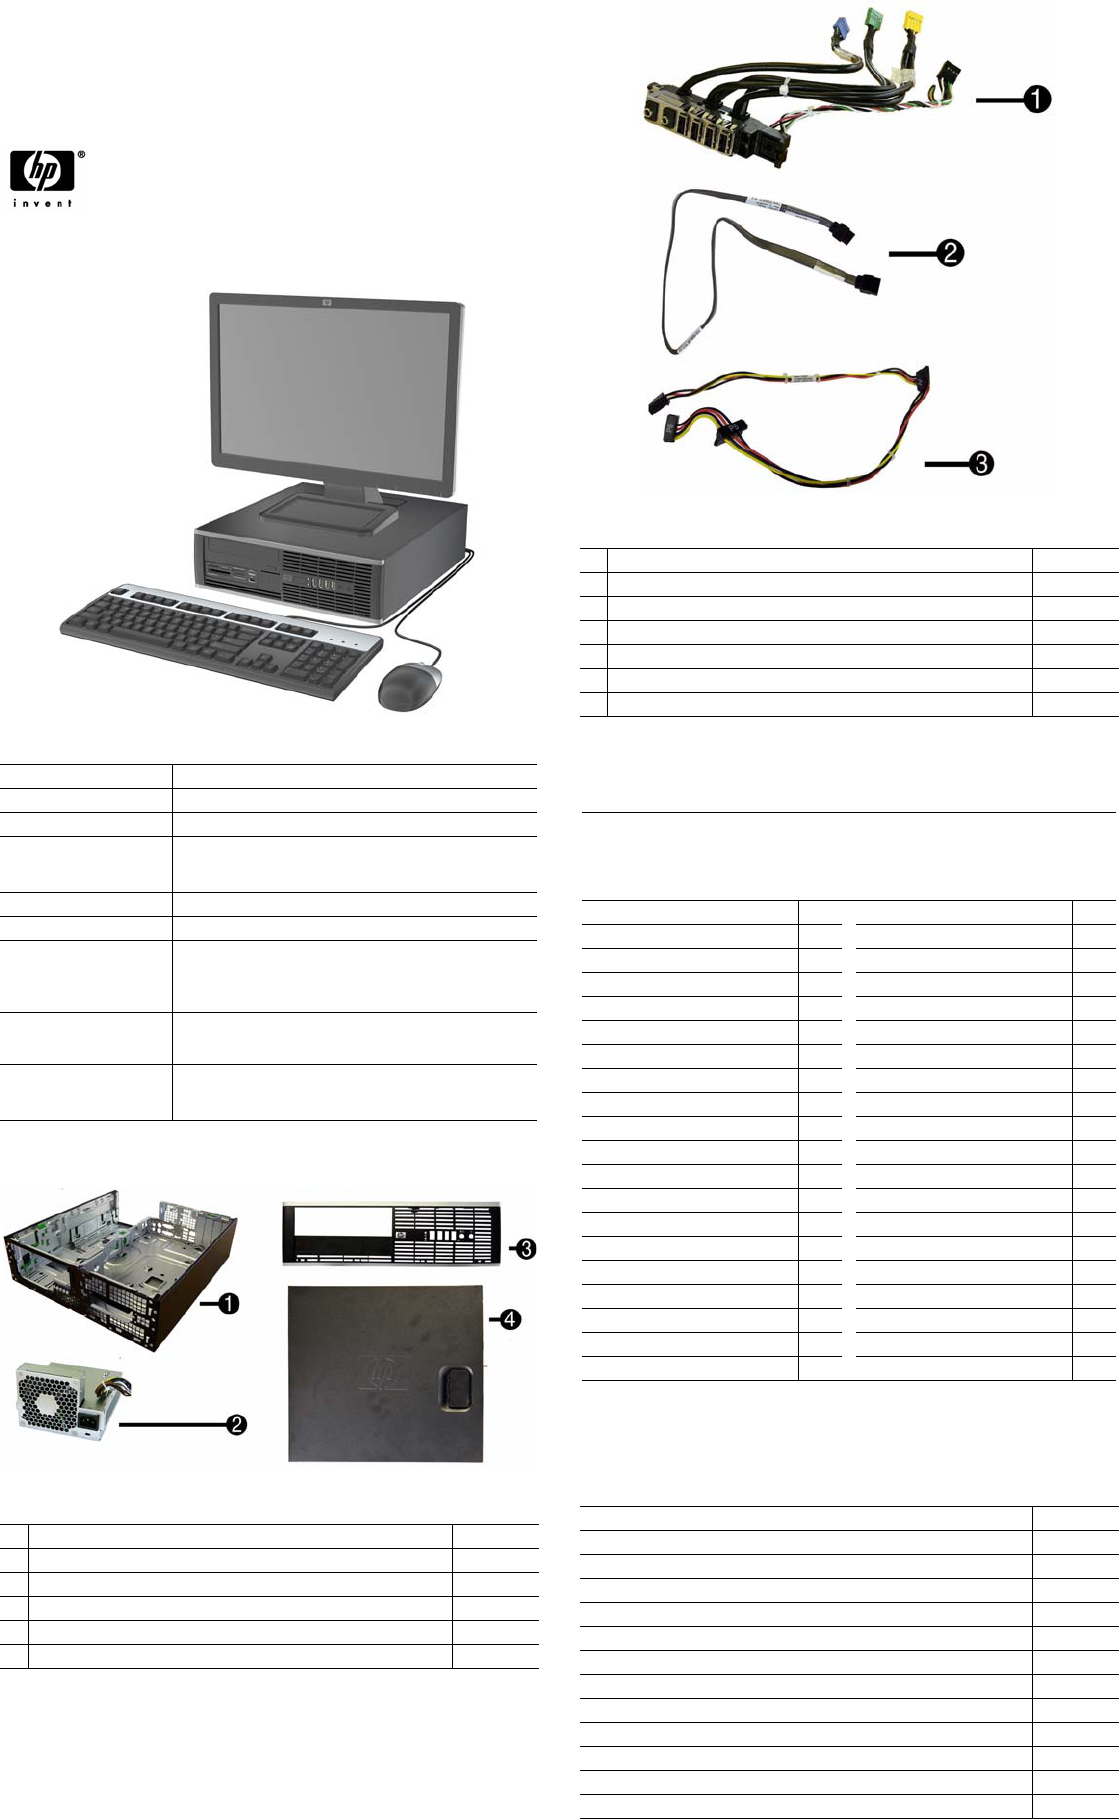 HP Compaq 6000 Pro, SFF Chassis 581652-001 Illustrated Parts